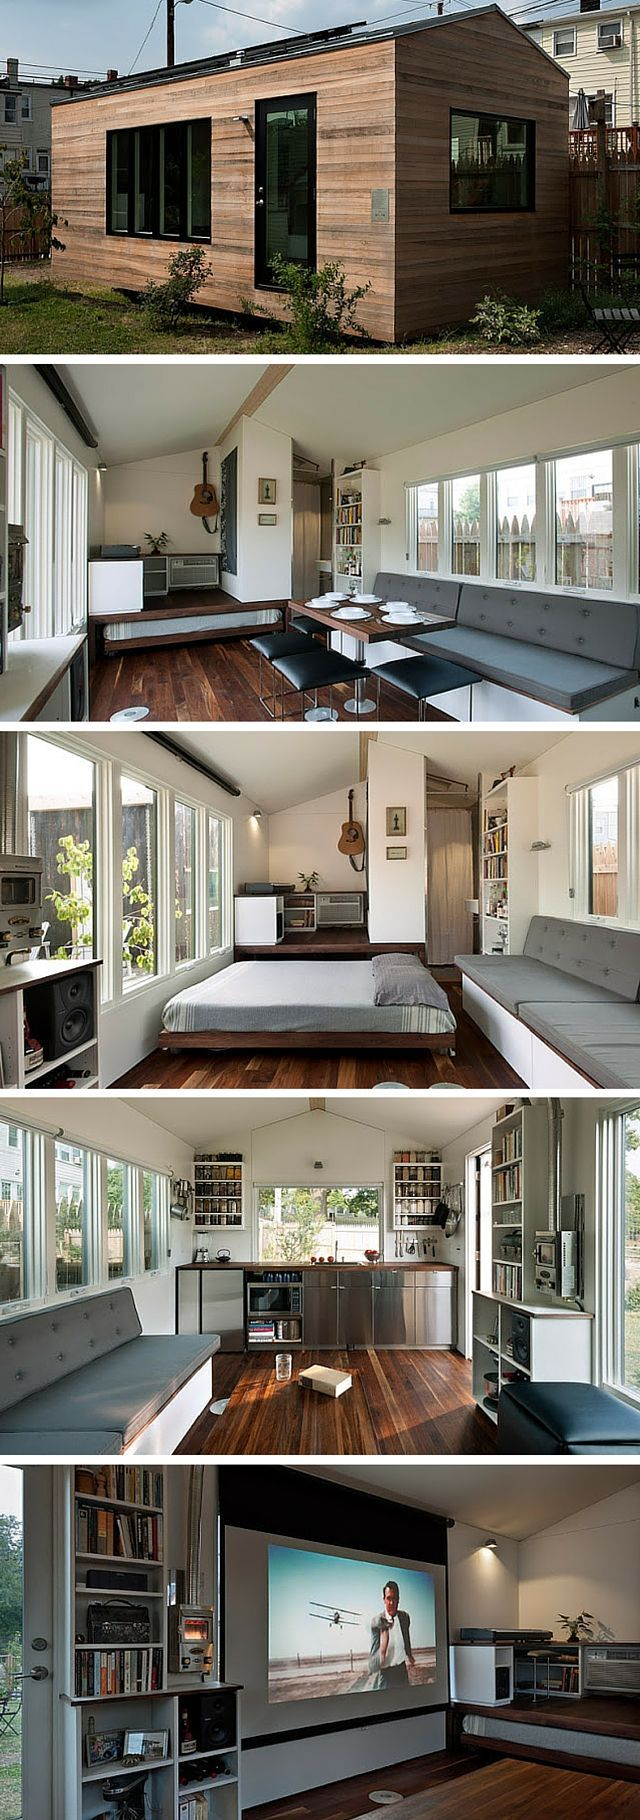 1000+ images about ♀ Modern Home Design on Pinterest - ^